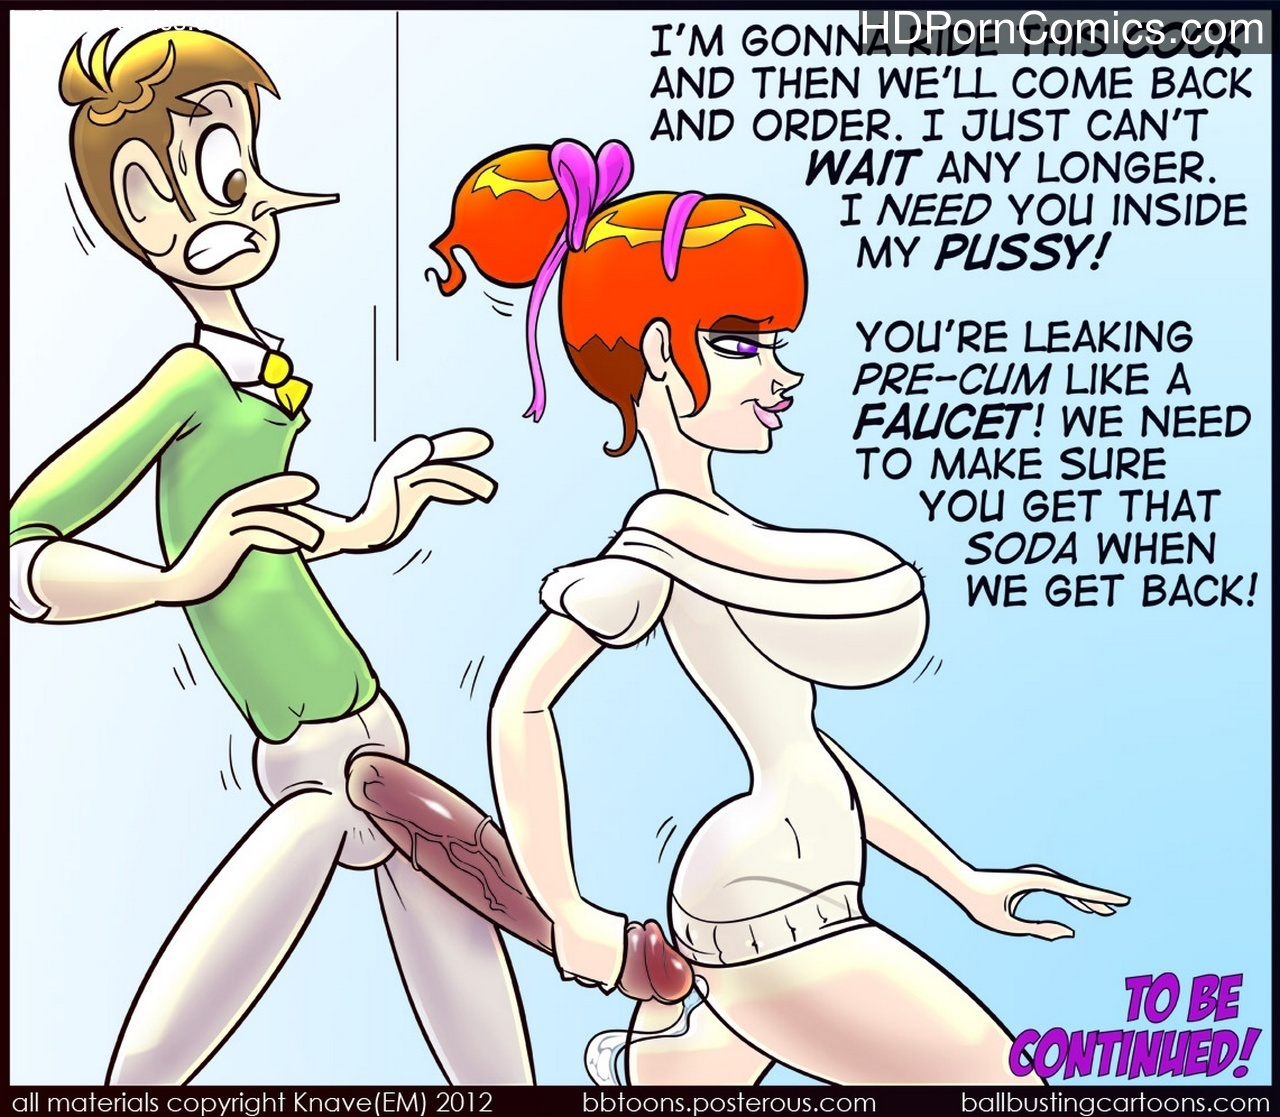 Apologise, Hitchhiker porn comic where